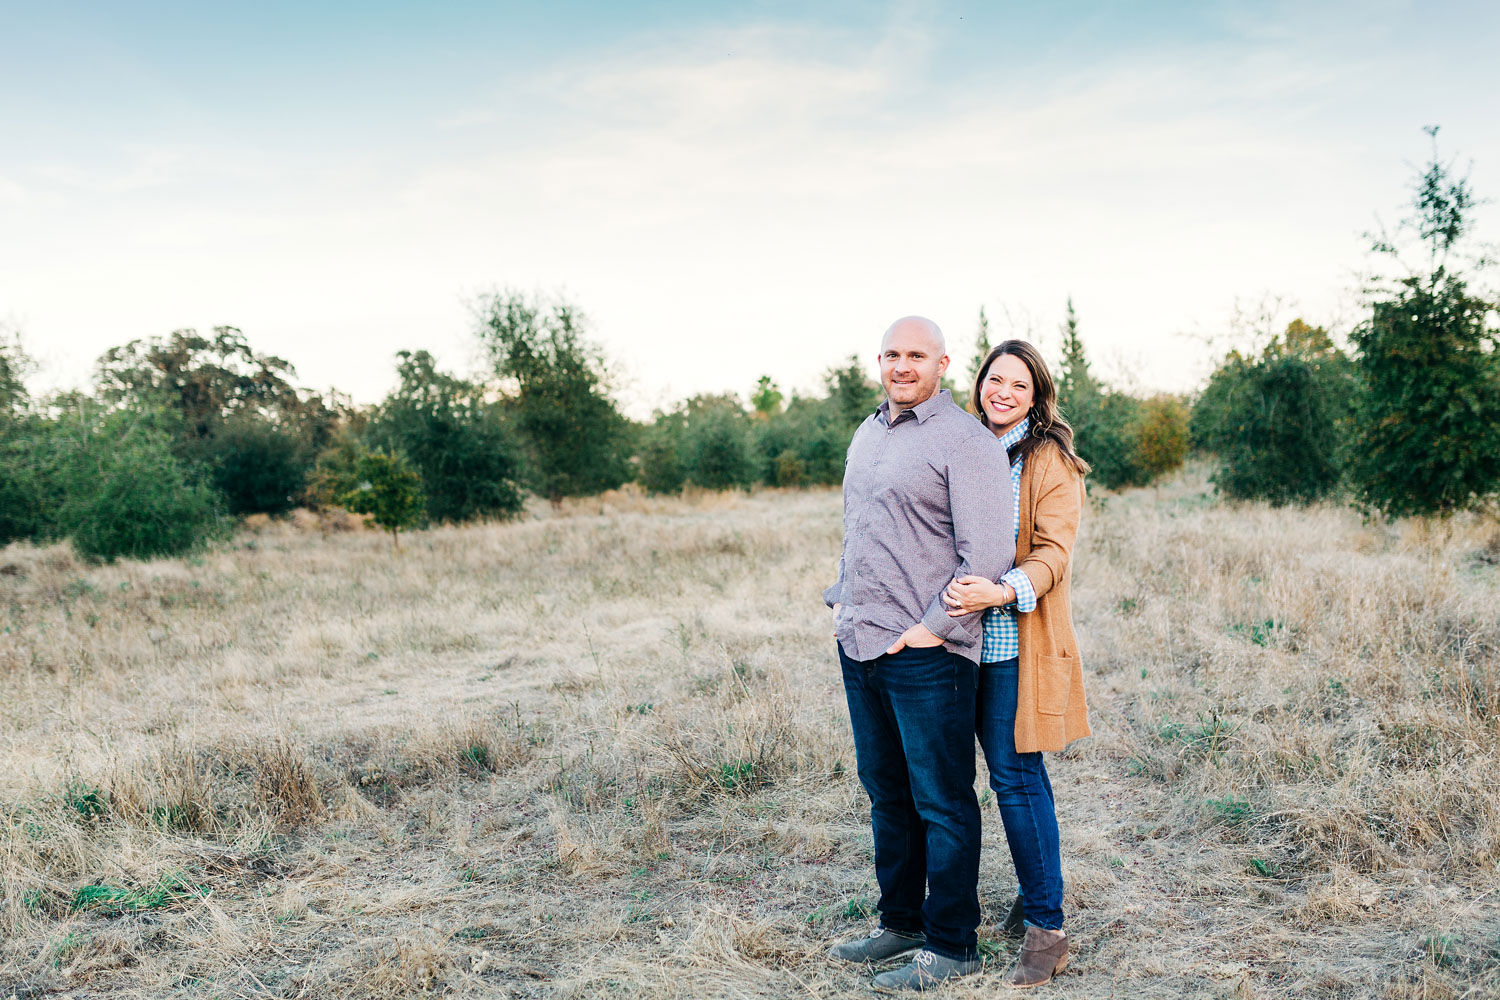 A mom and dad get their photo taken during family pictures in a field in Roseville, California.